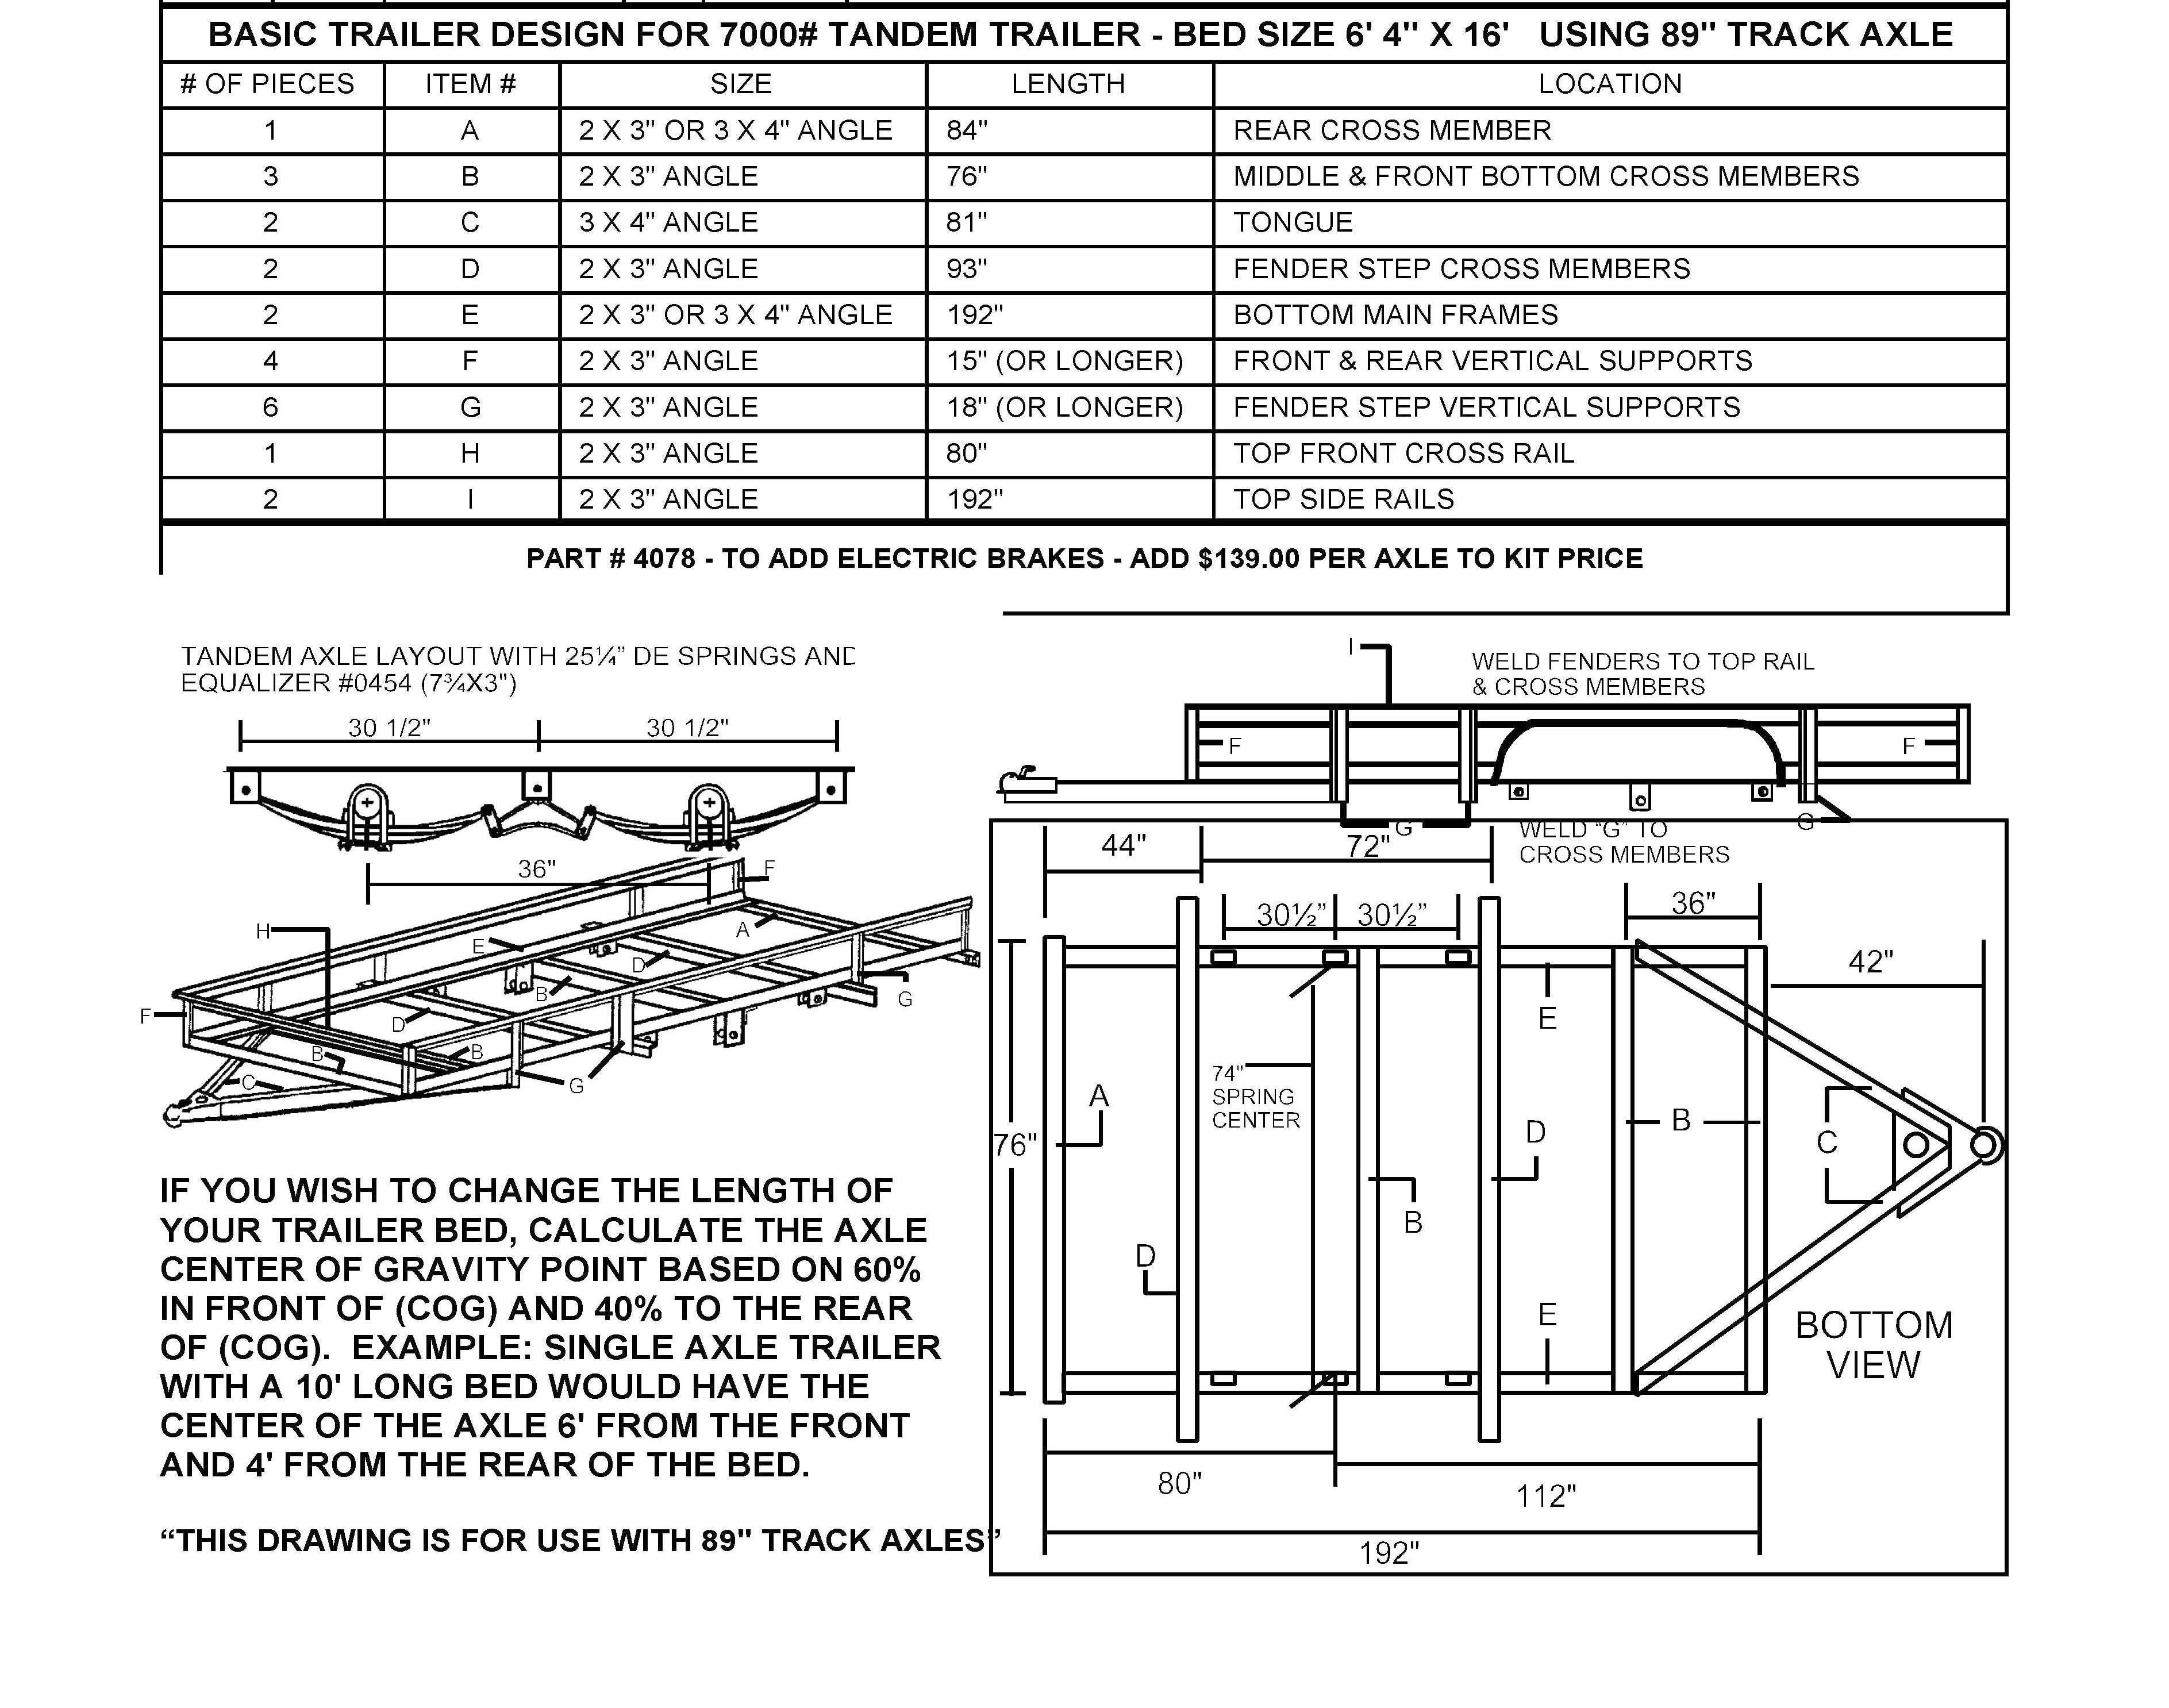 73 Tandem Utility Trailer Undercarriage Kit Build Your Own